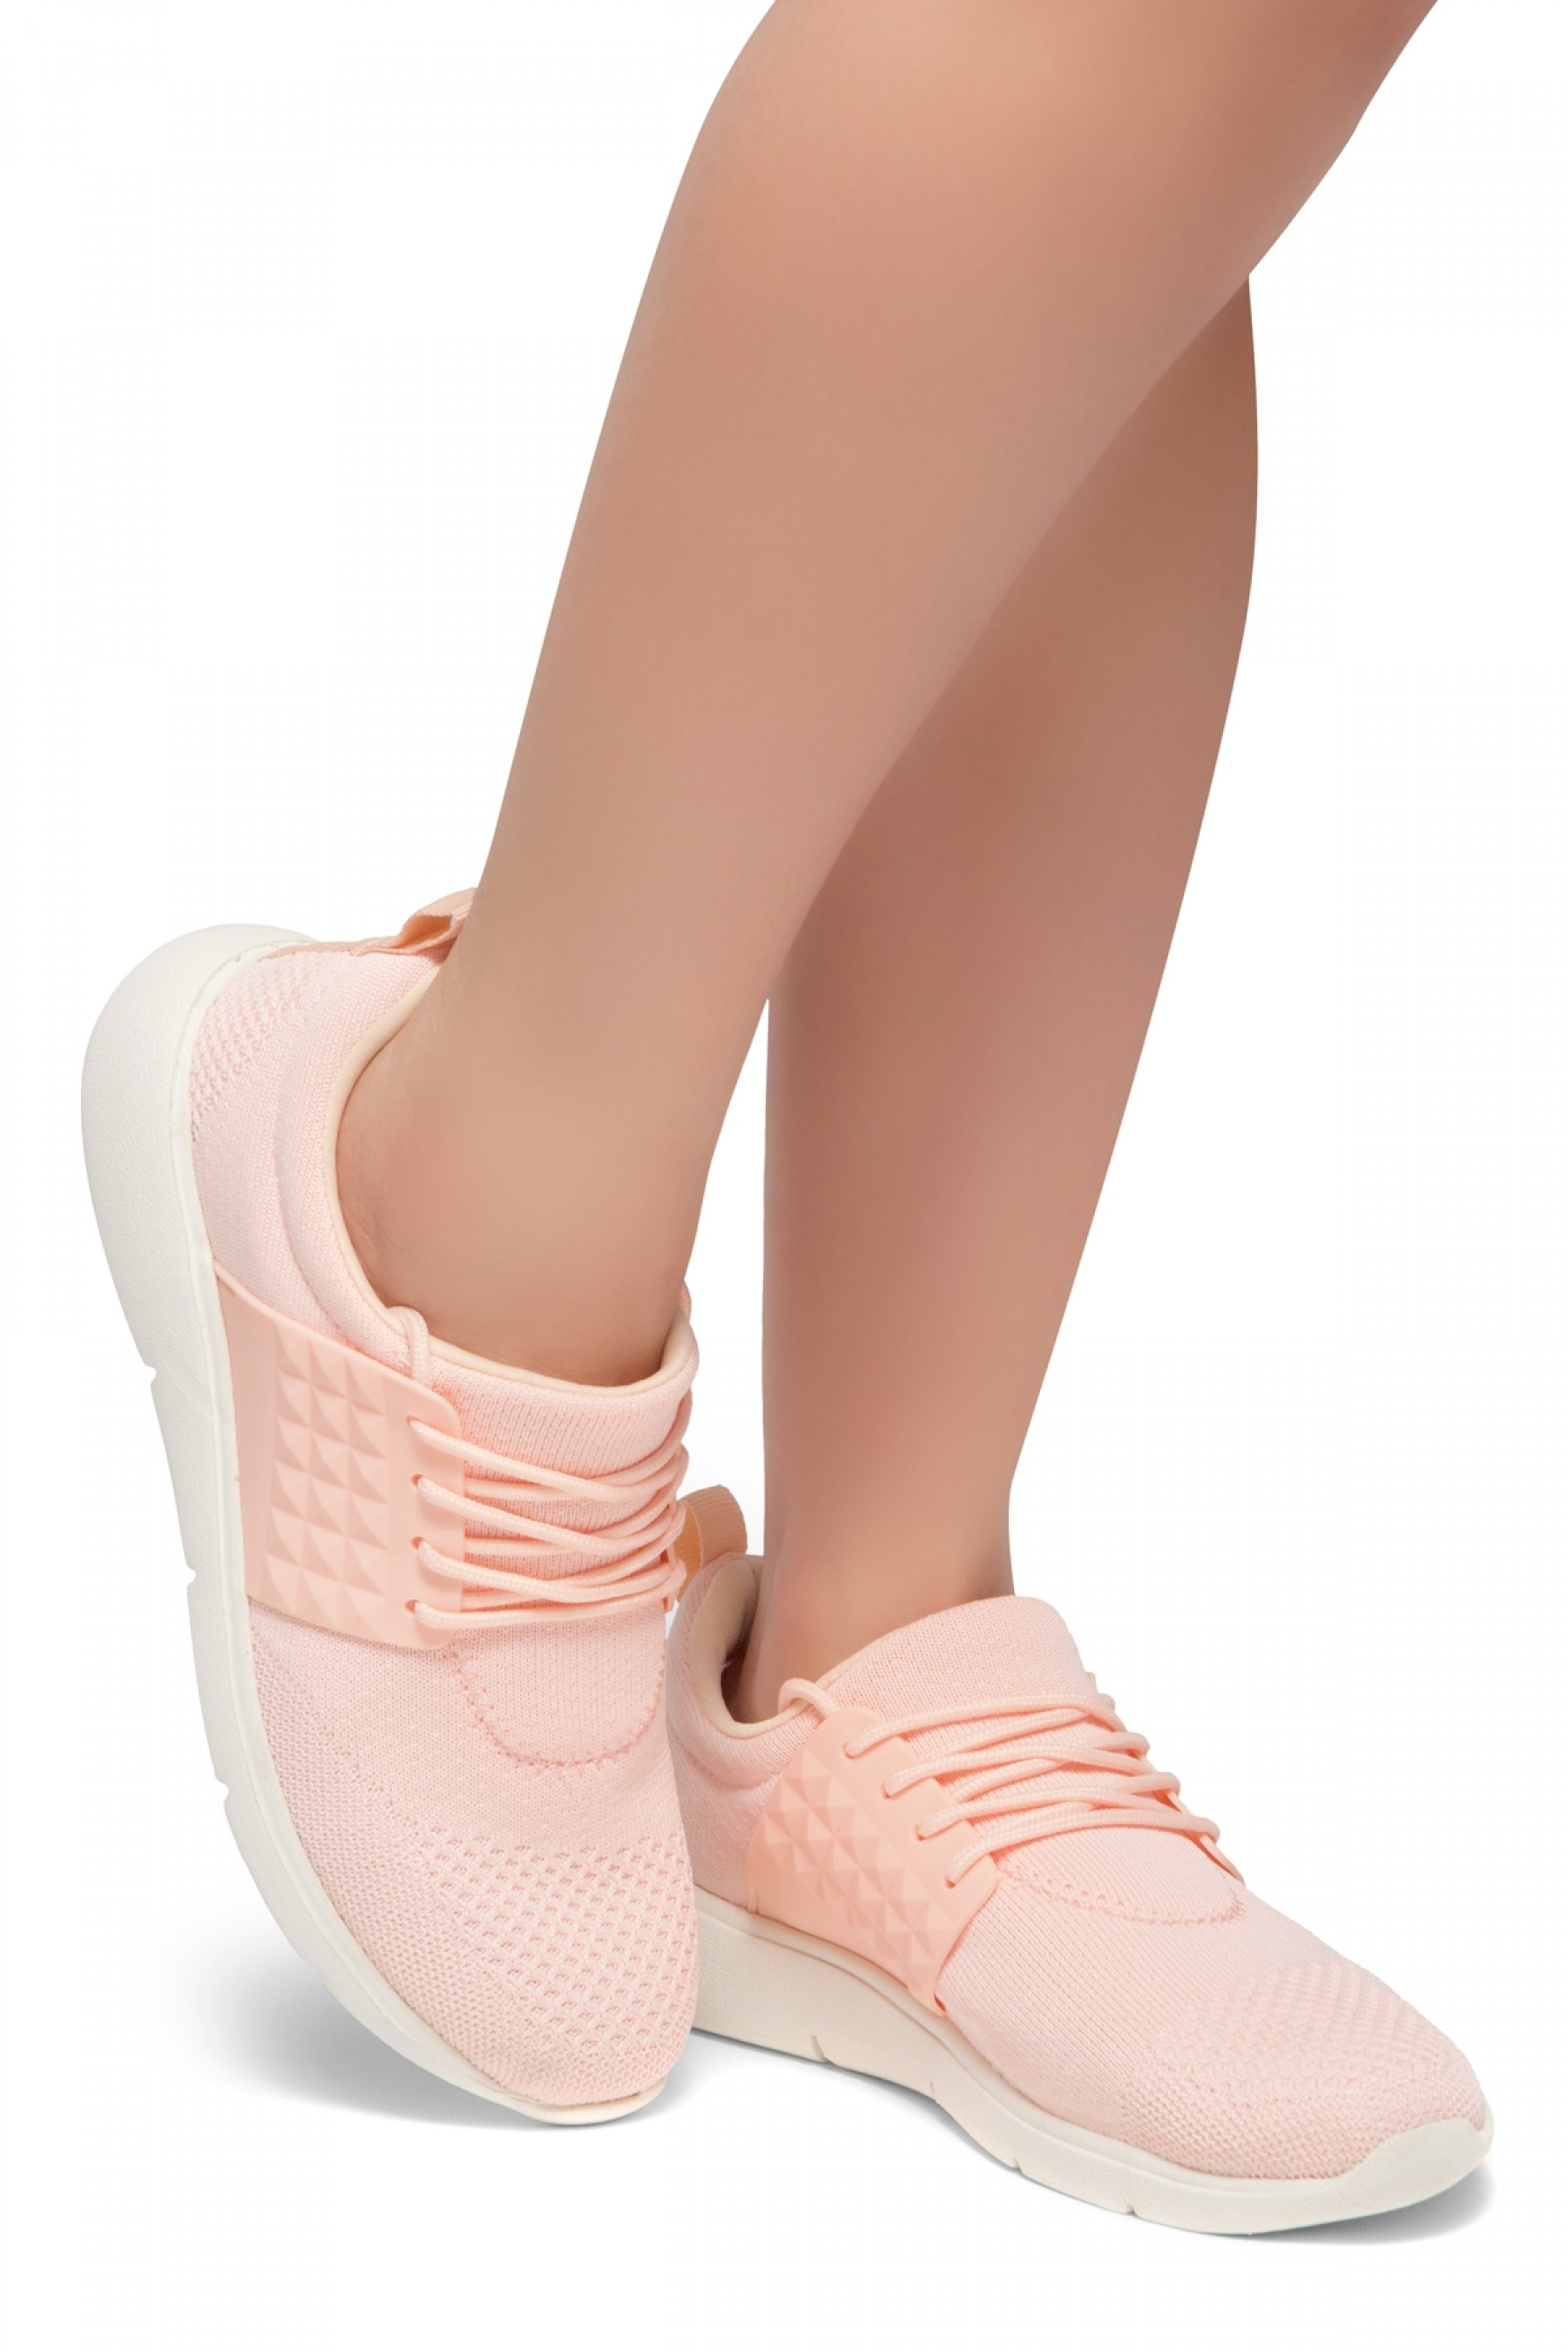 HerStyle STYLE CATCHER-Knit Lace up Rigged Sneaker (Pink)